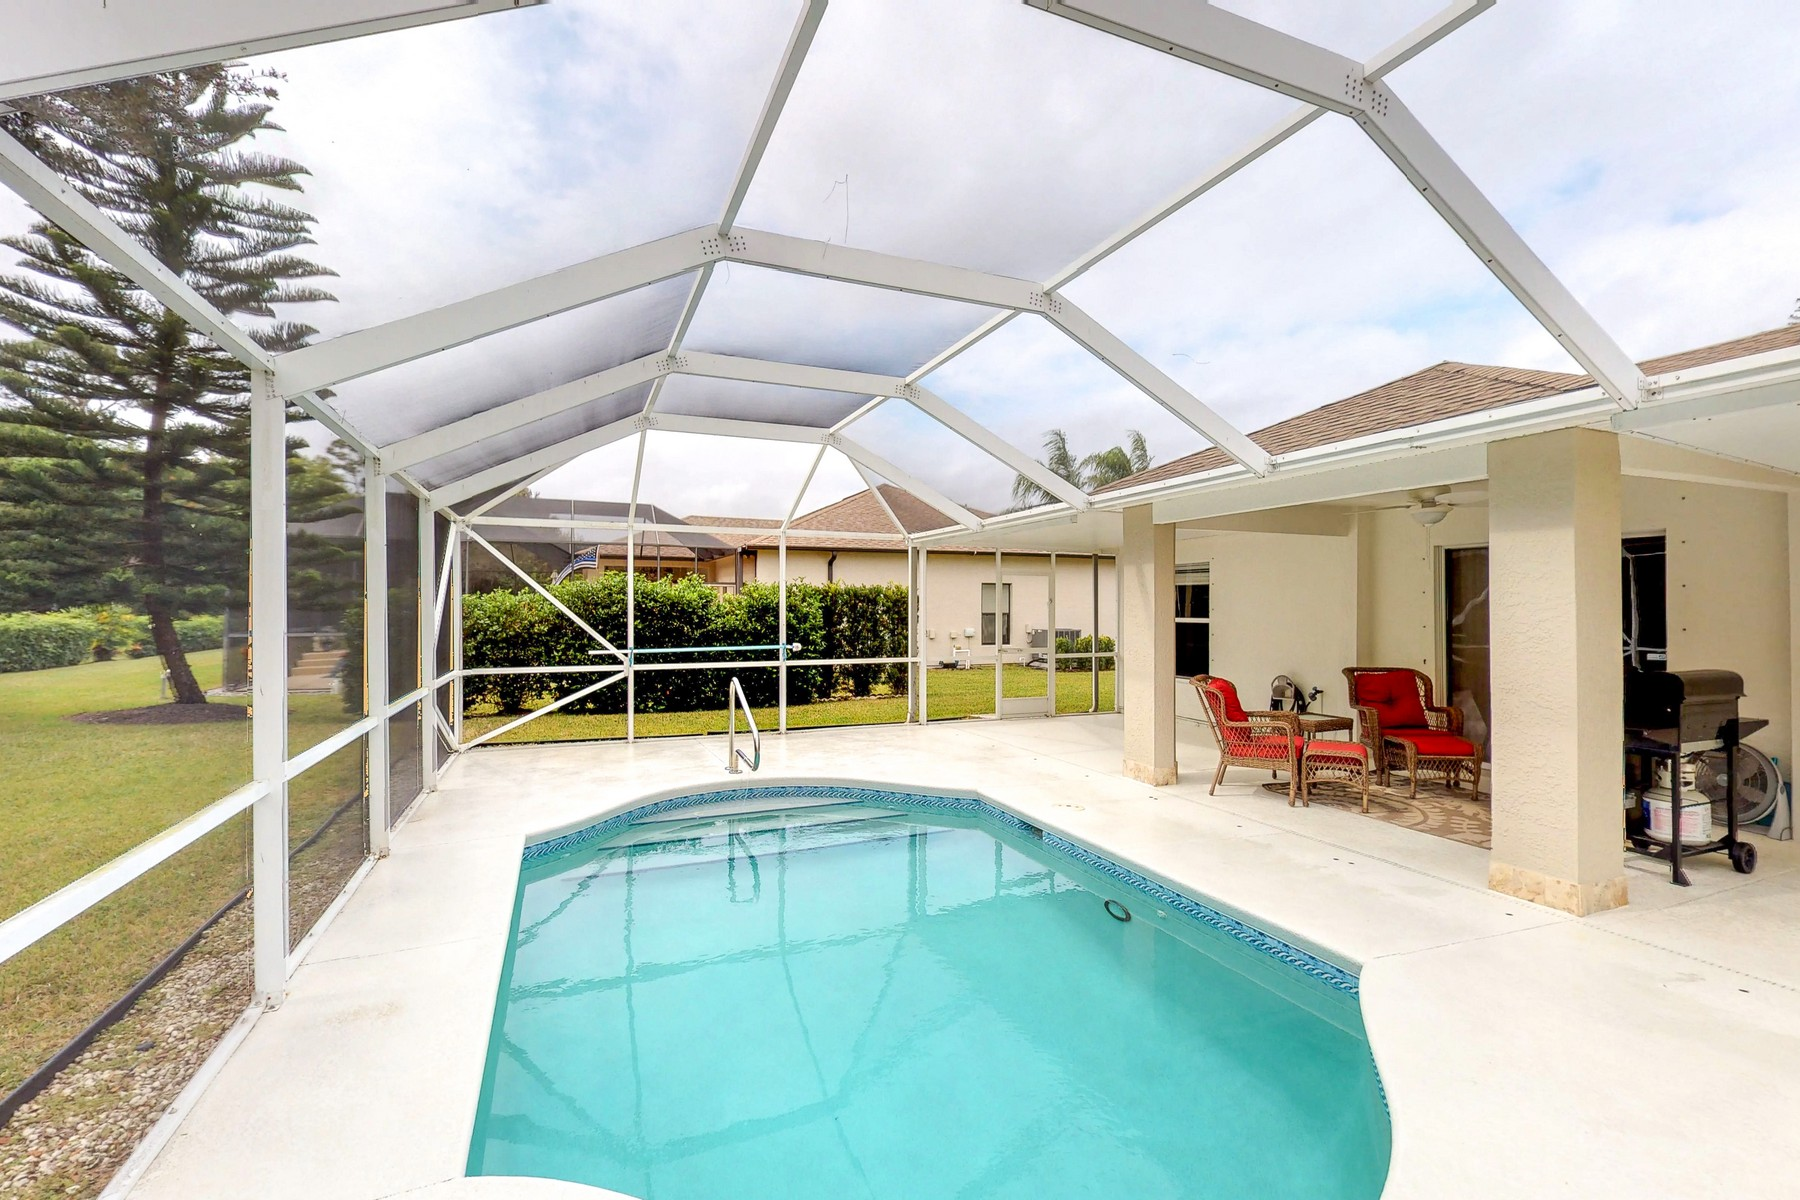 Single Family Home for Sale at Contemporary, Pool, Low HOA, Privacy! 3673 2nd Place SW Vero Beach, Florida 32968 United States